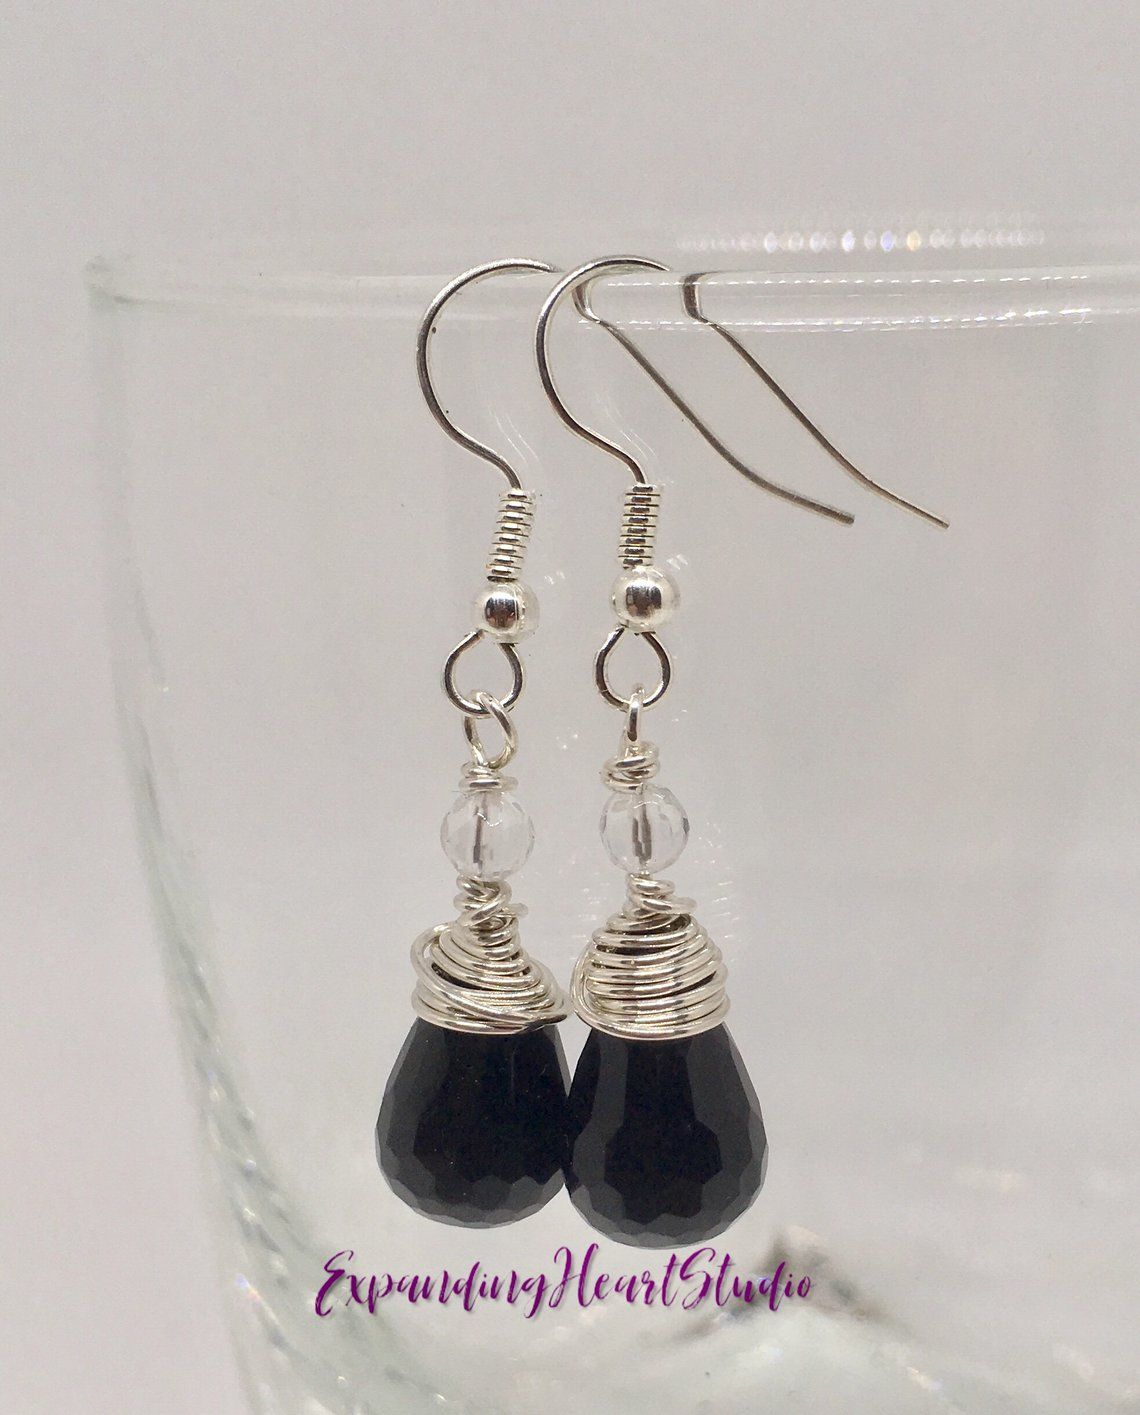 Iridized Textured Copper  /& Onyx Earrings with Sterling Accents